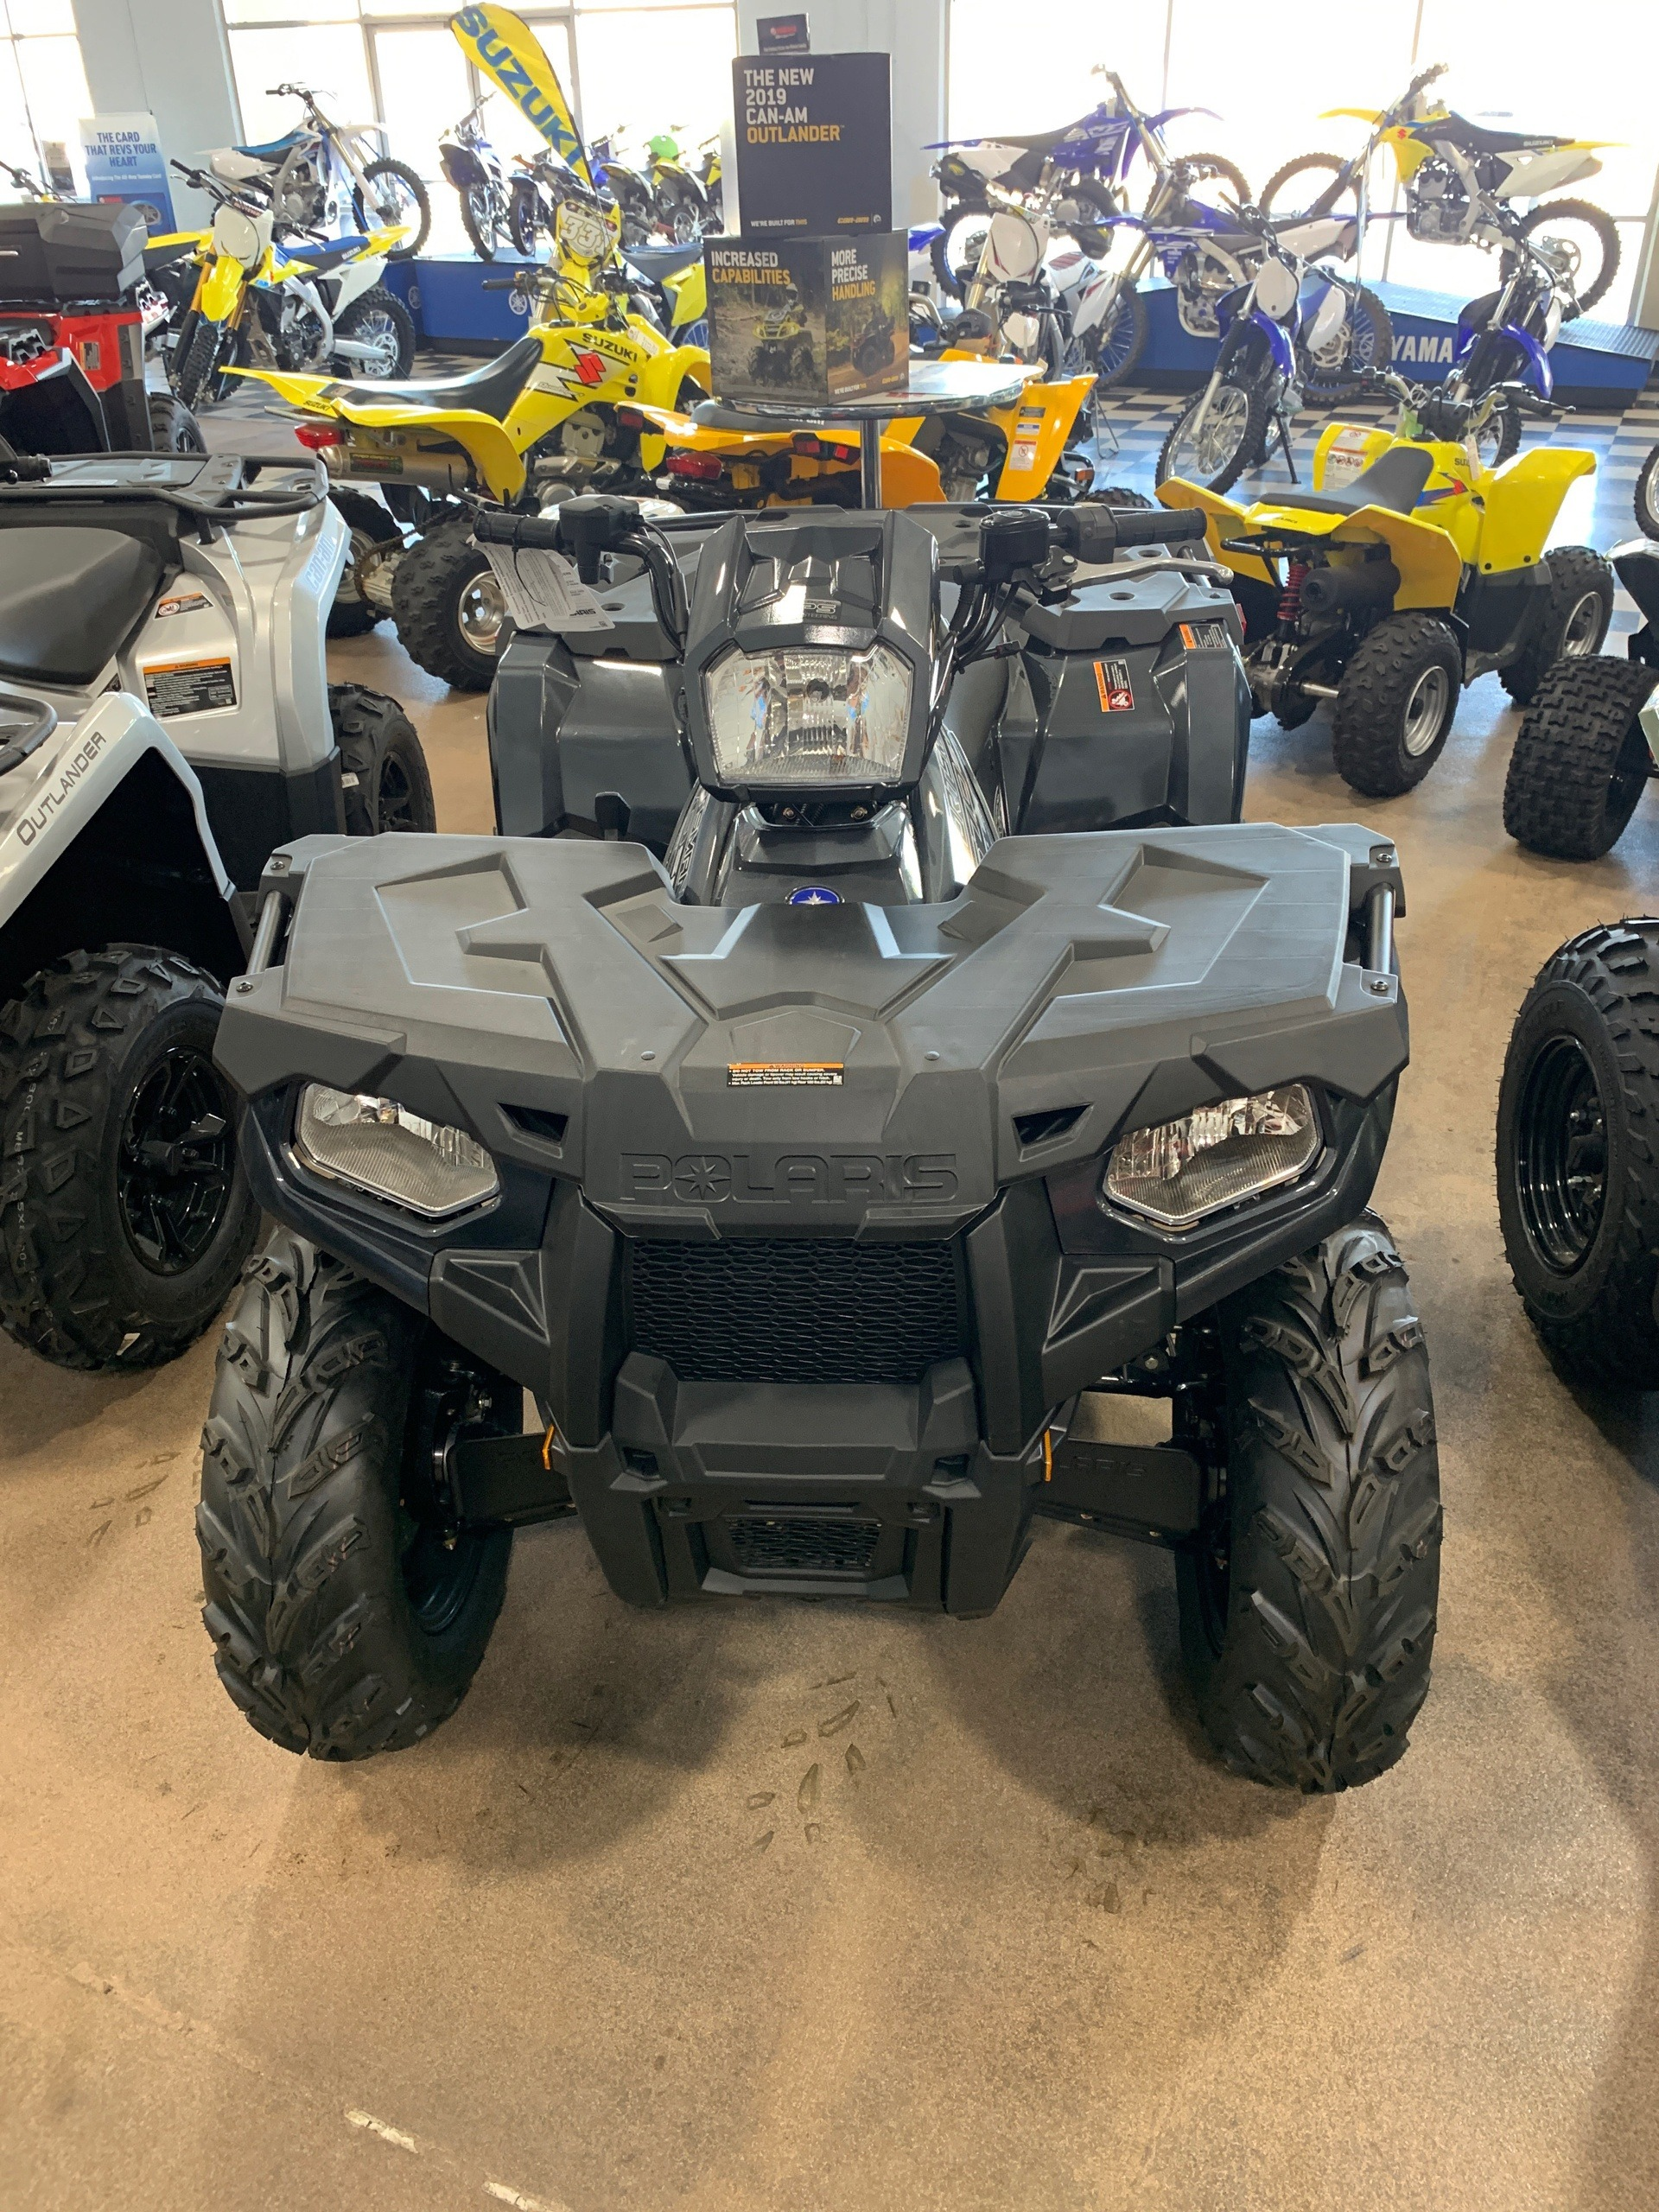 2019 Polaris Sportsman 570 SP in Santa Maria, California - Photo 2